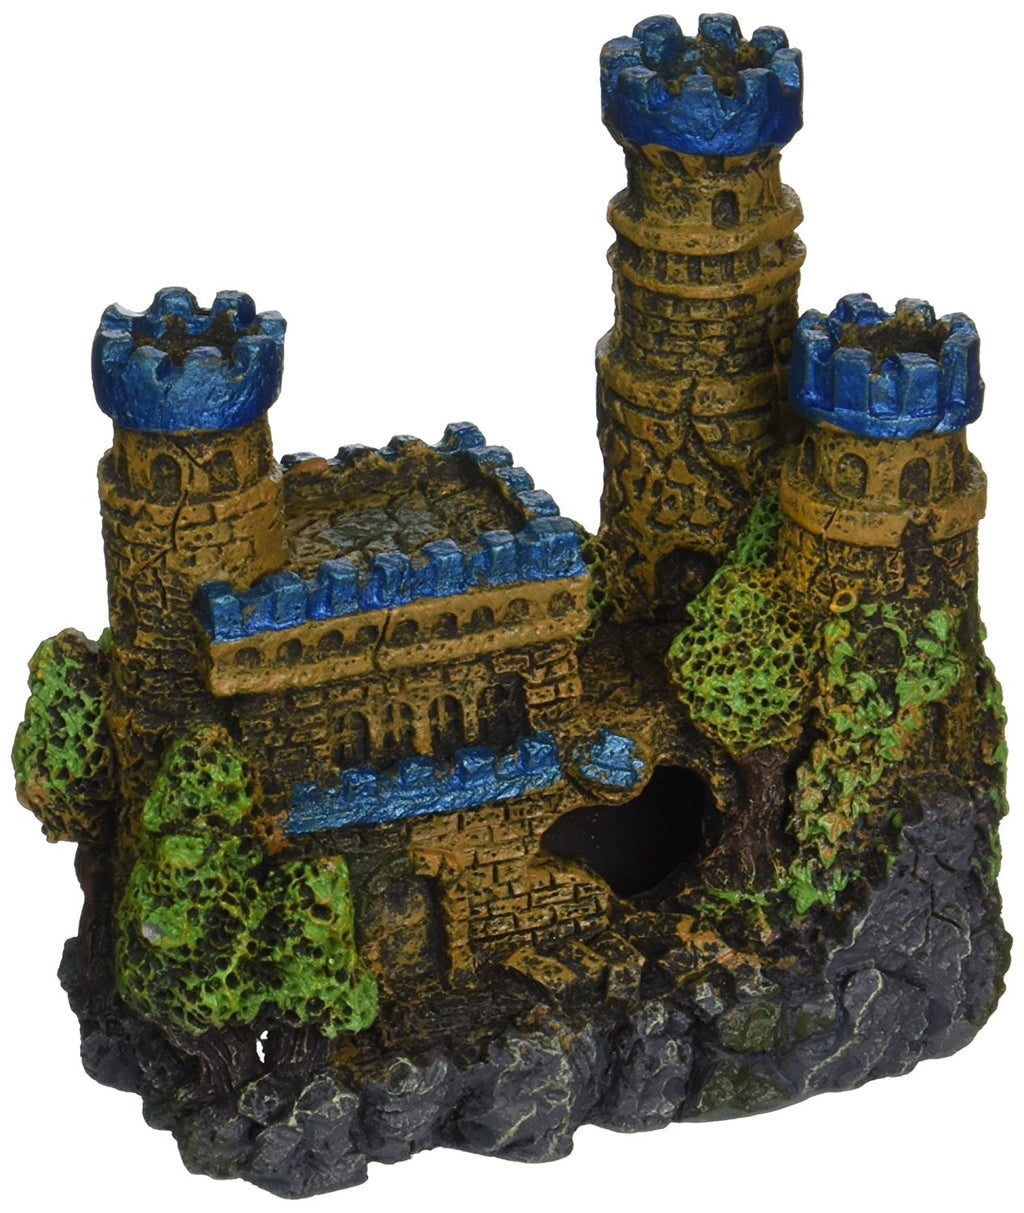 "Blue Ribbon Pet Products Resin Ornament - Medieval Castle Mini Blue 4""es x 2.25""es x 4""es"